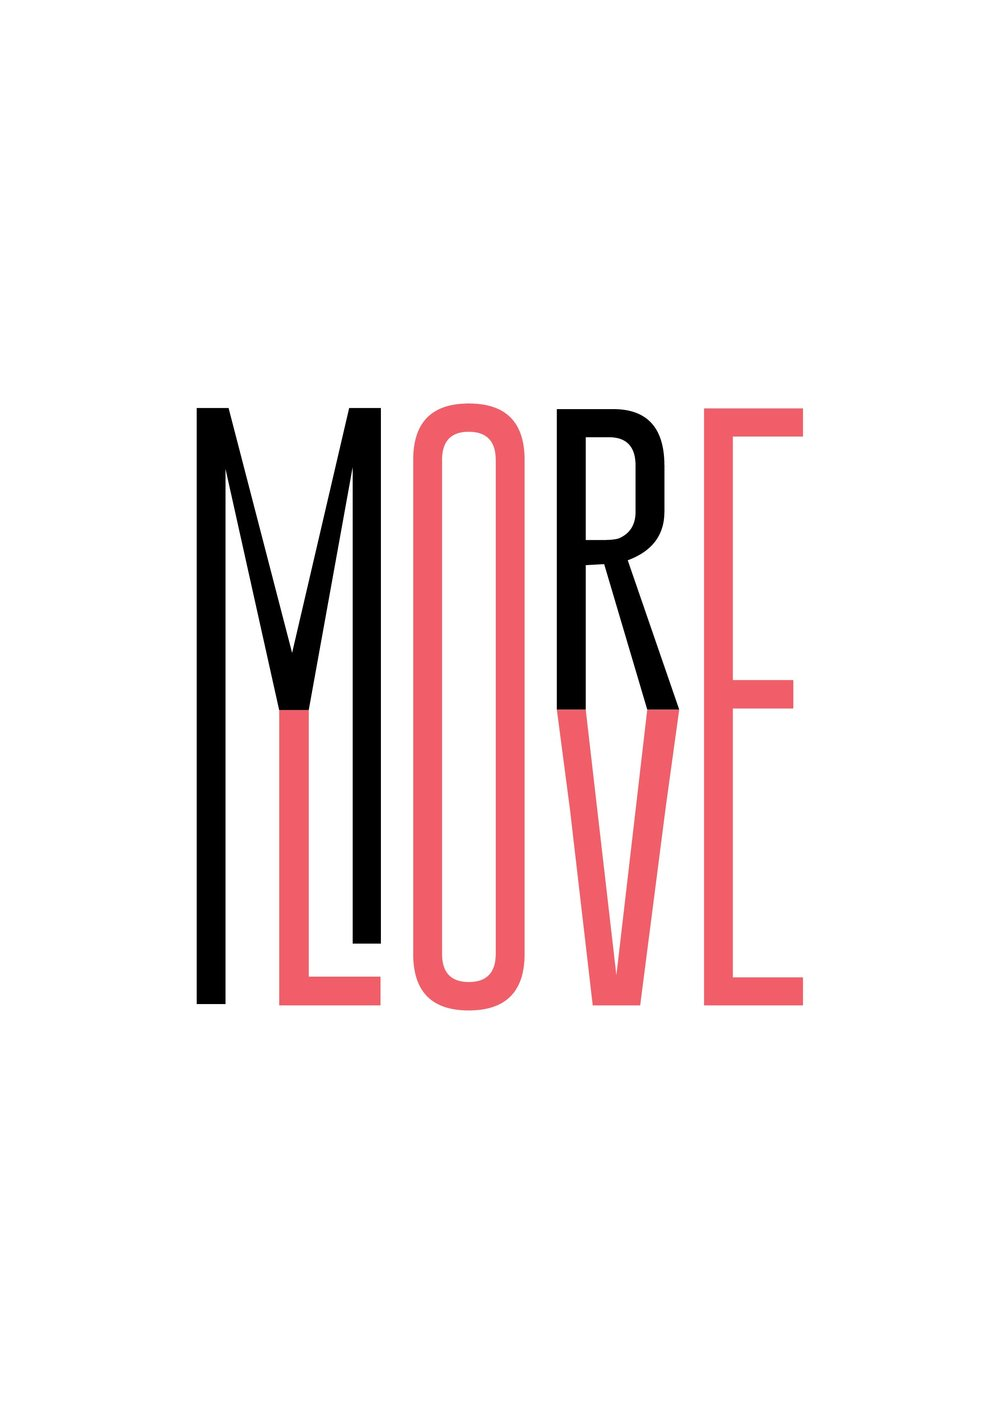 More Love Color-01.jpg